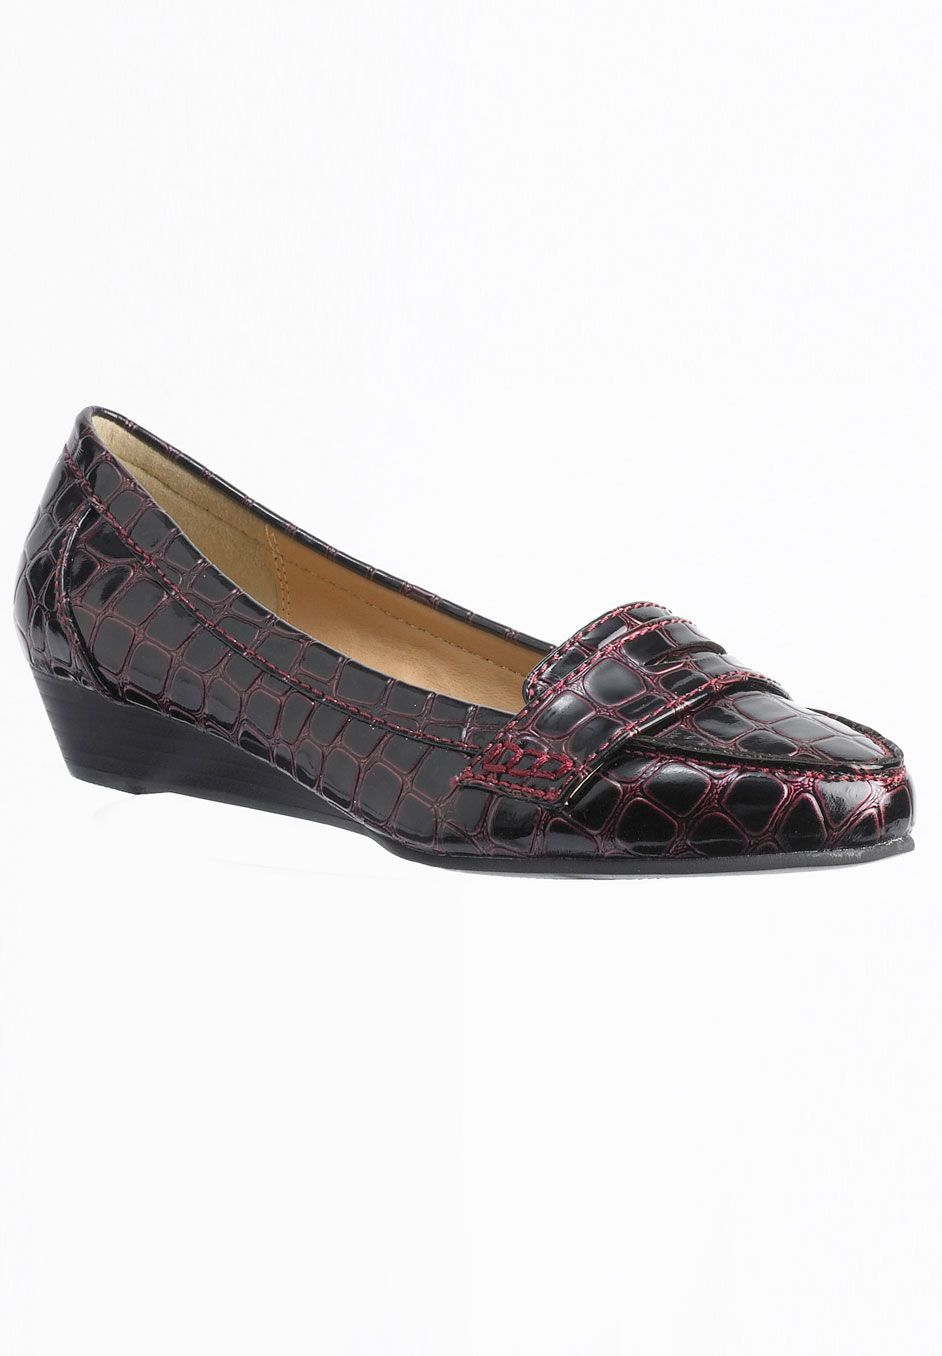 Creative 1940s Womens Shoes  The Online Baltimore Shoeseum